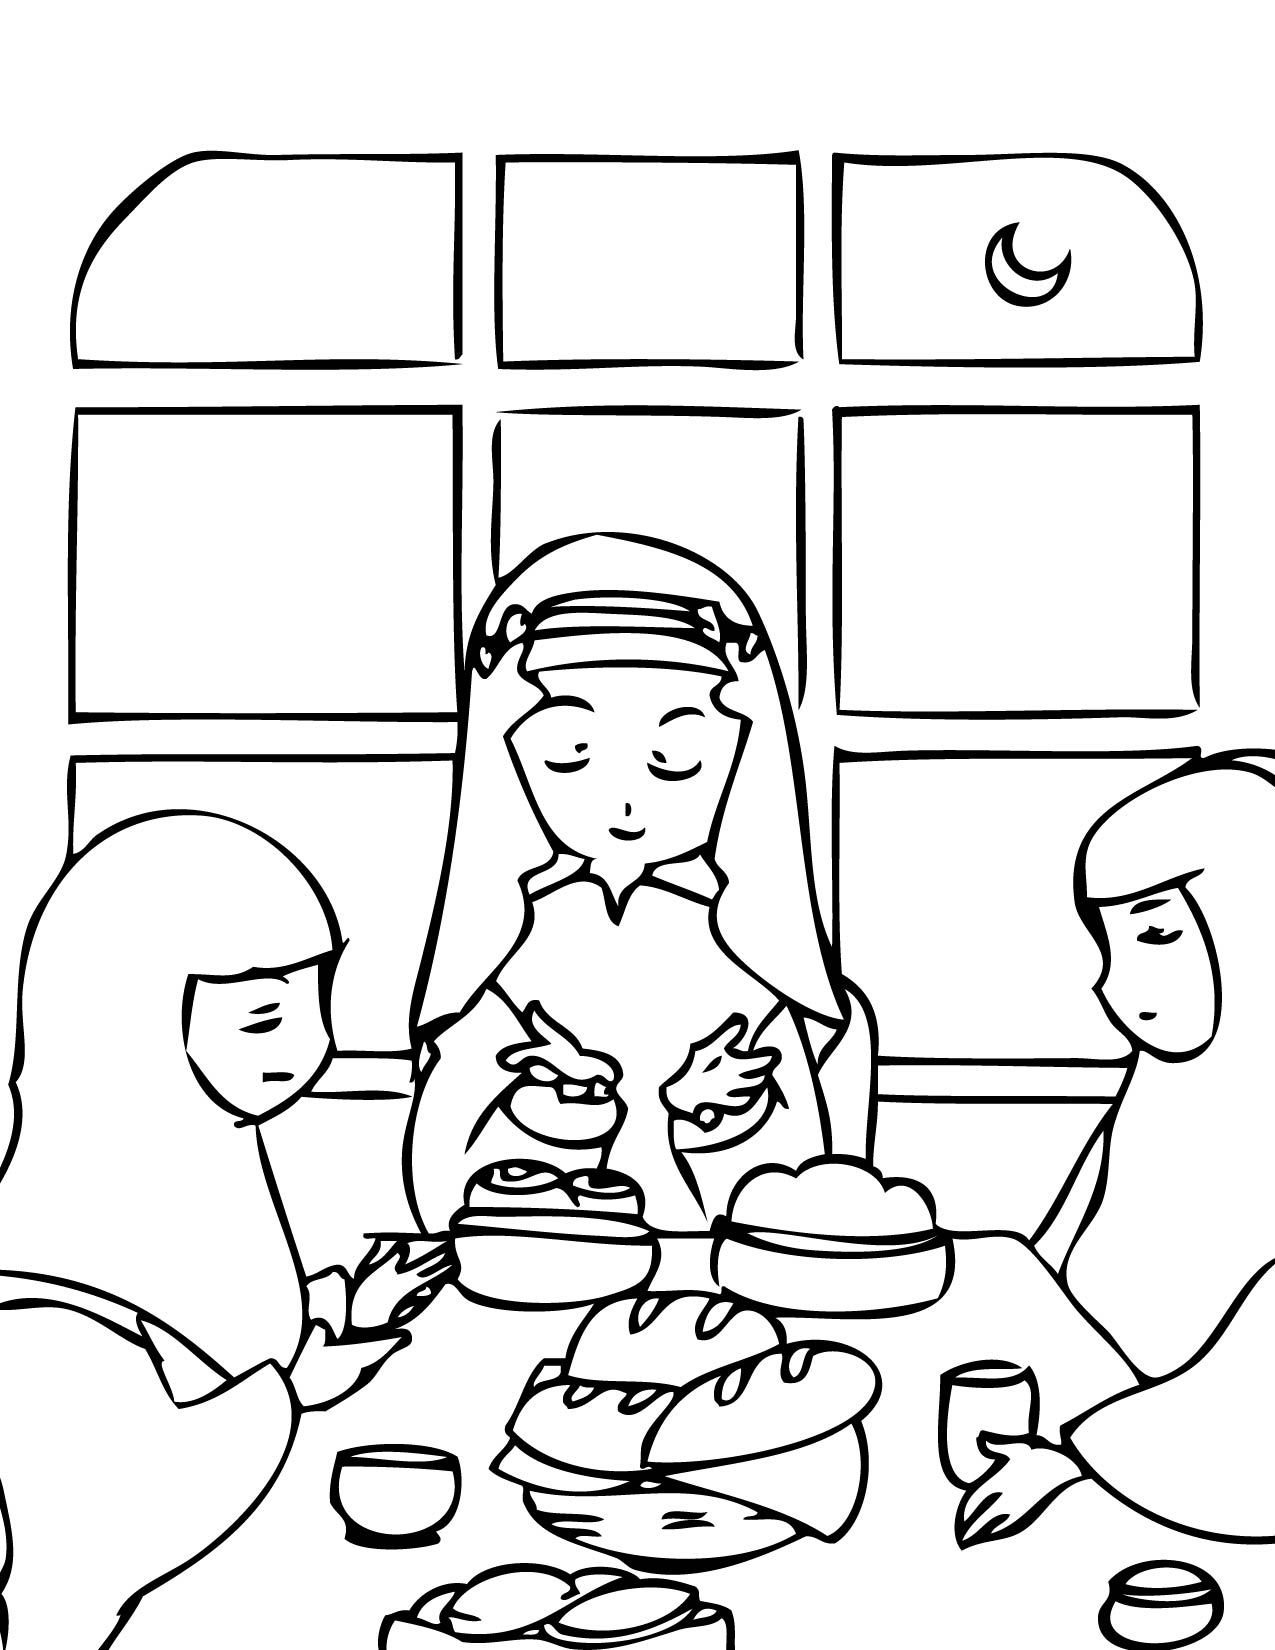 Ramadan coloring page handipoints for Ramadan coloring pages